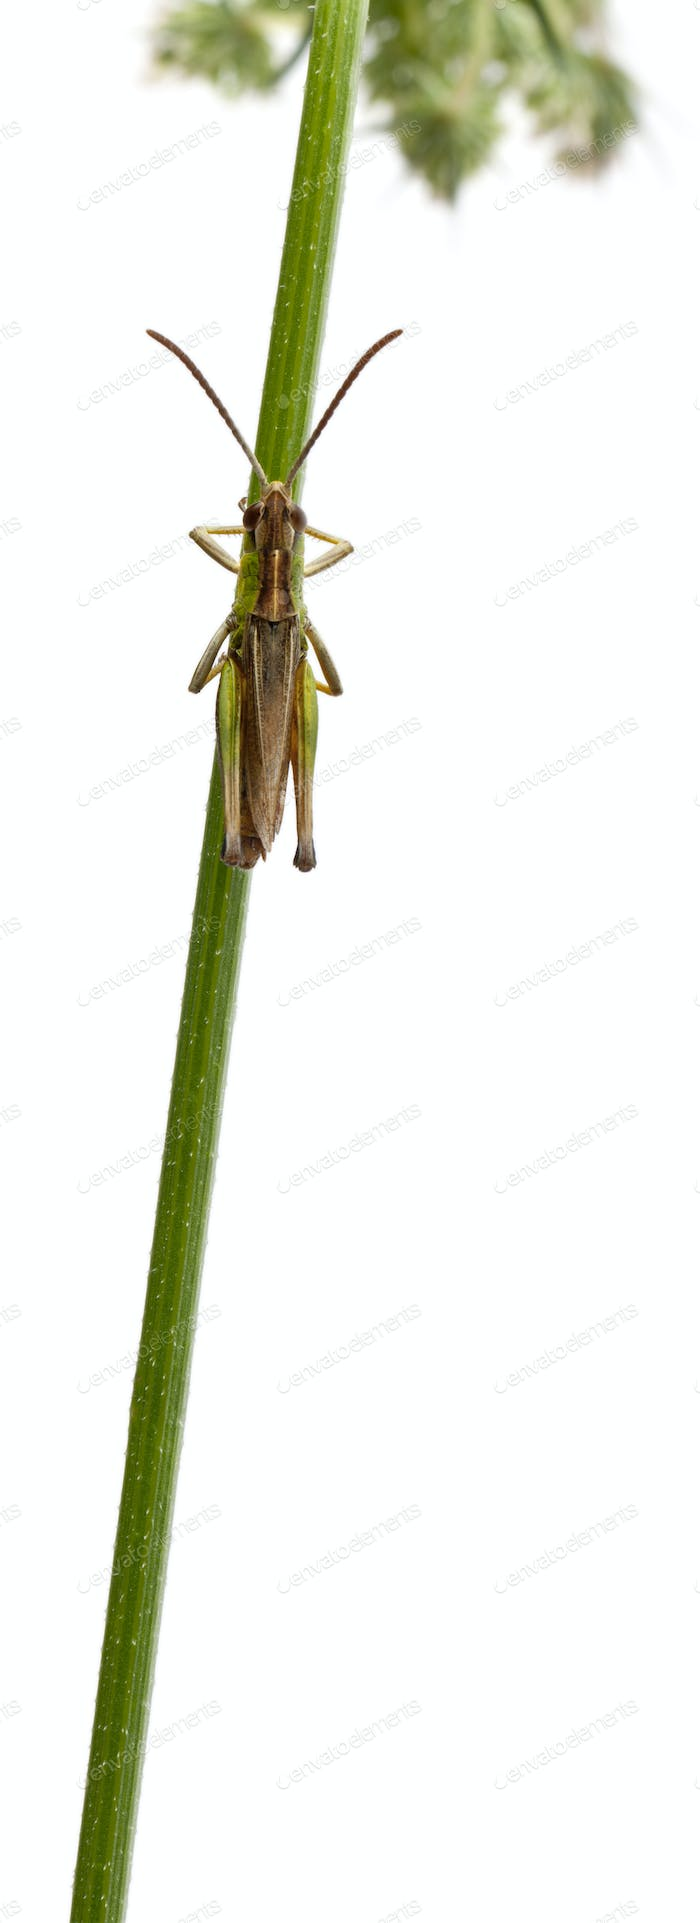 Grasshopper on a stem in front of white background